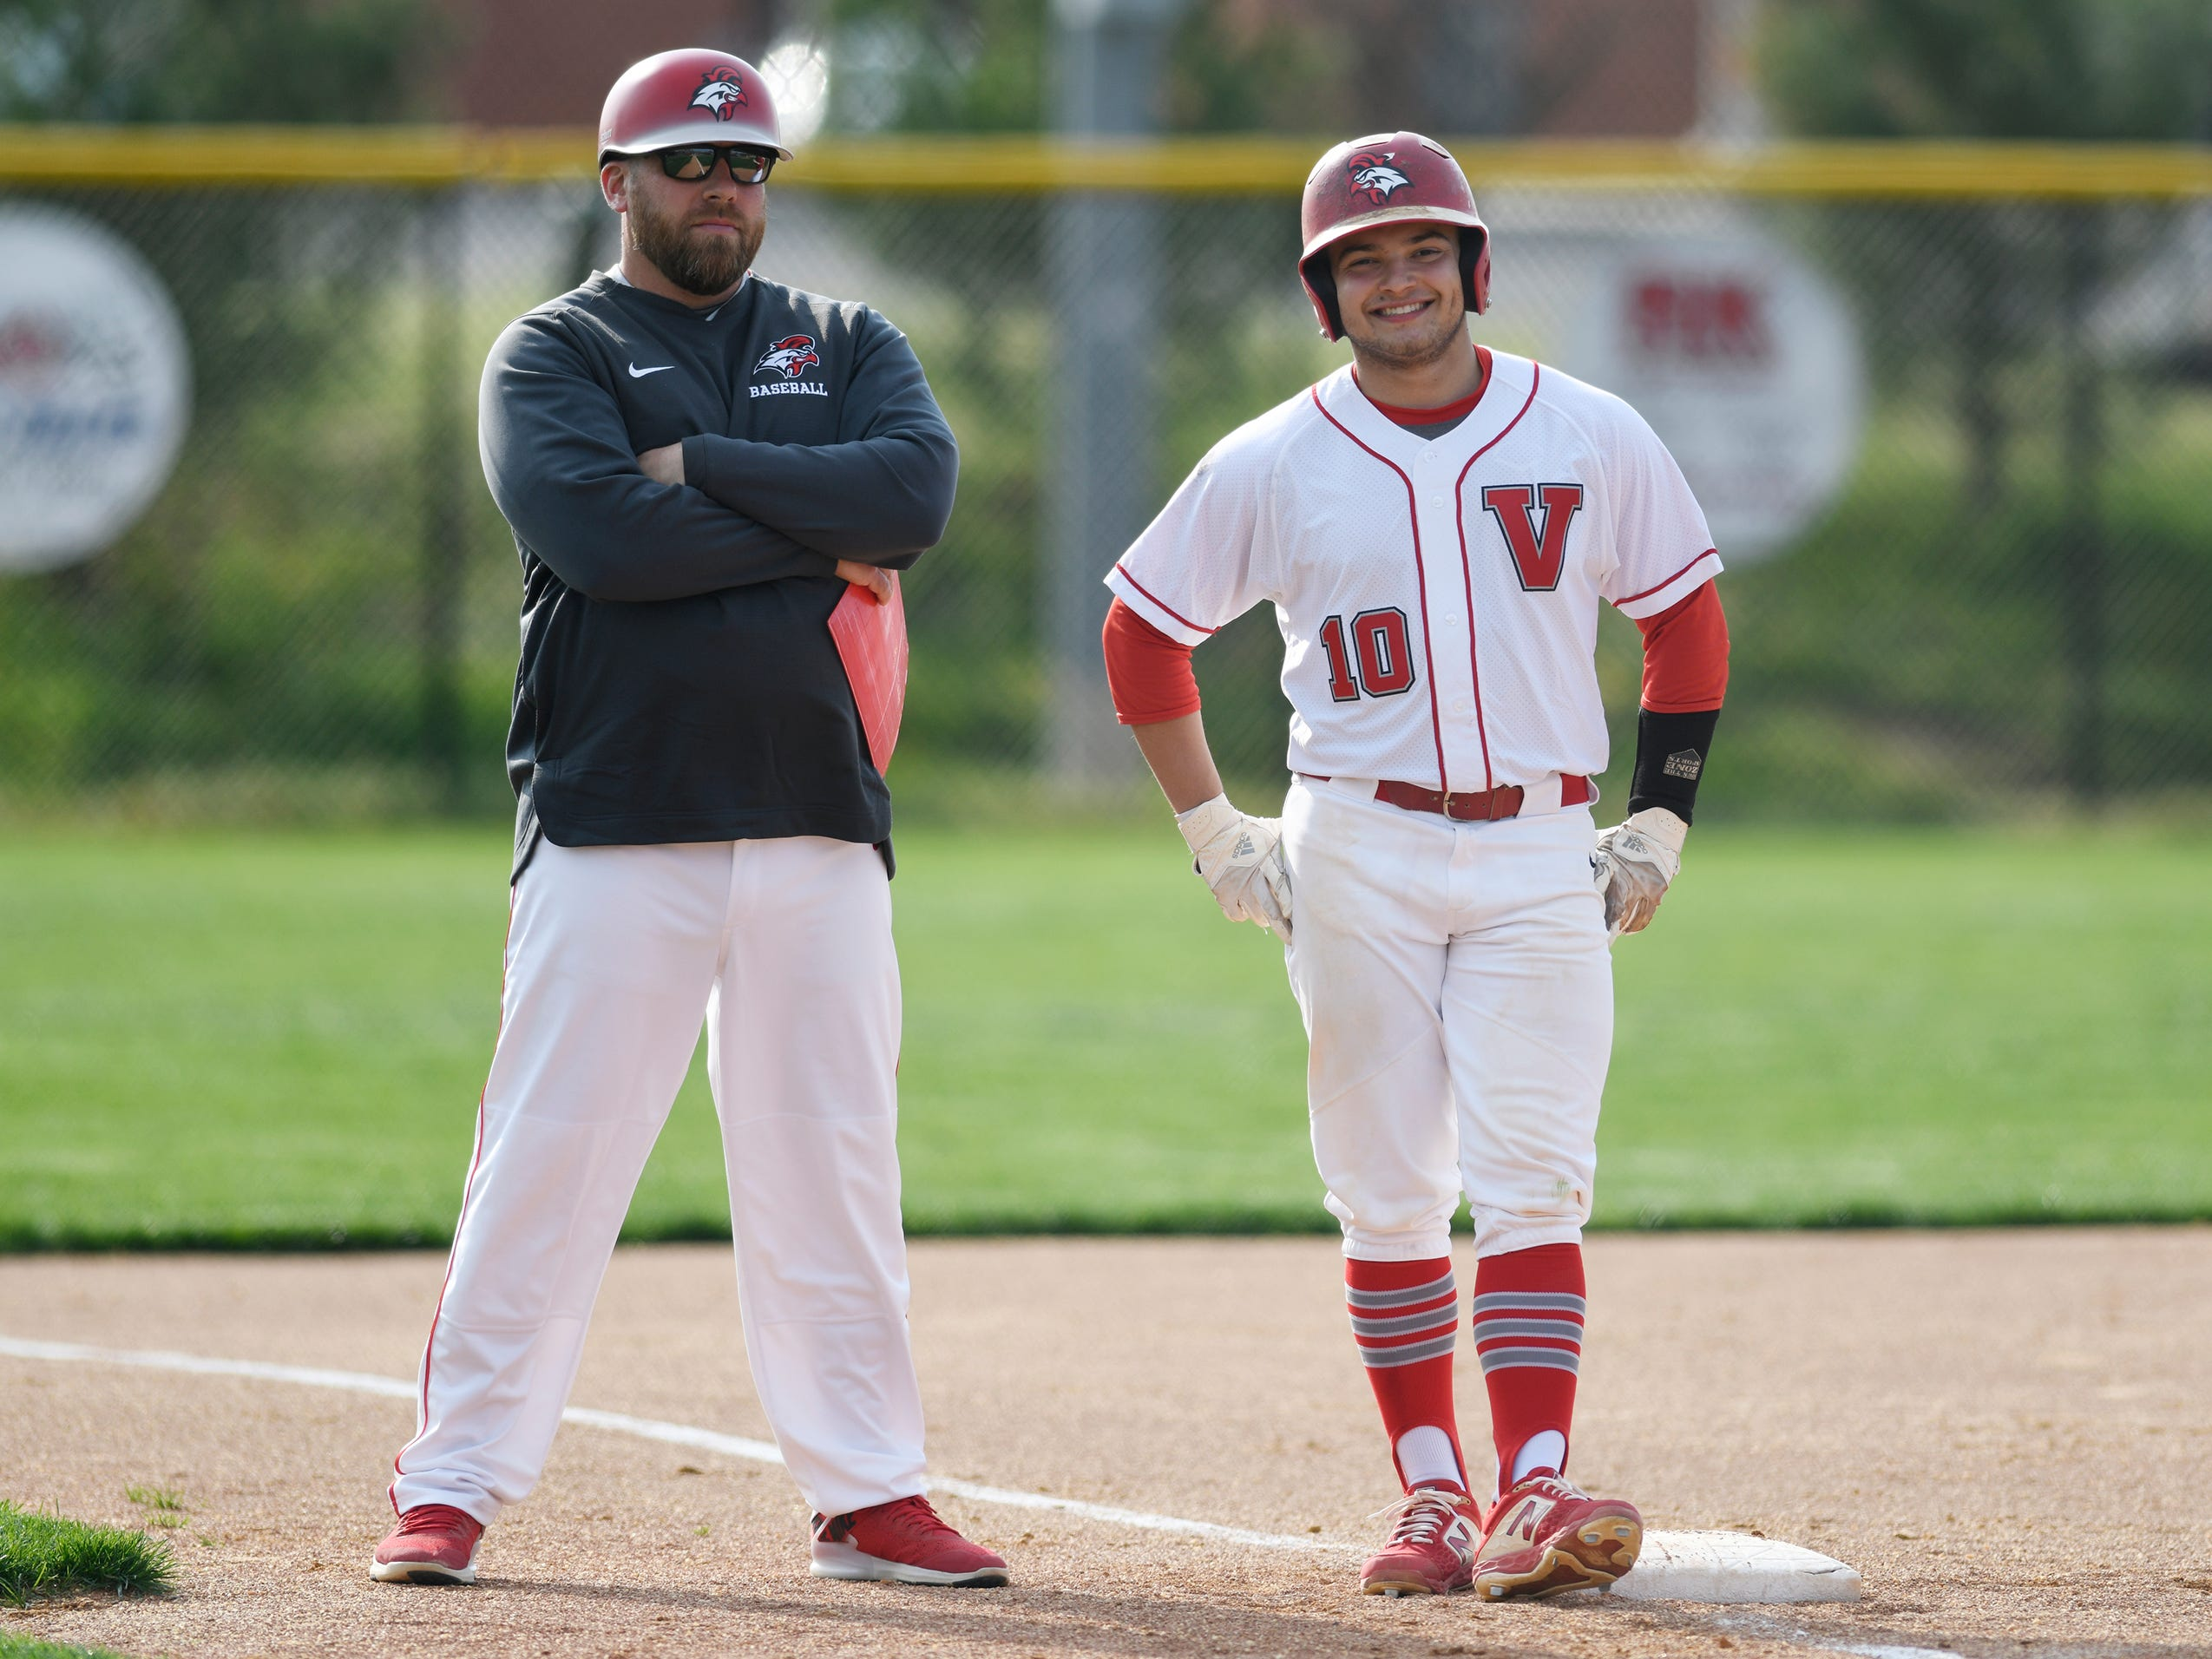 Vineland's Hector Perez on third in a game against Atlantic City on Wednesday. The Fighting Clan topped the Vikings 12-2.